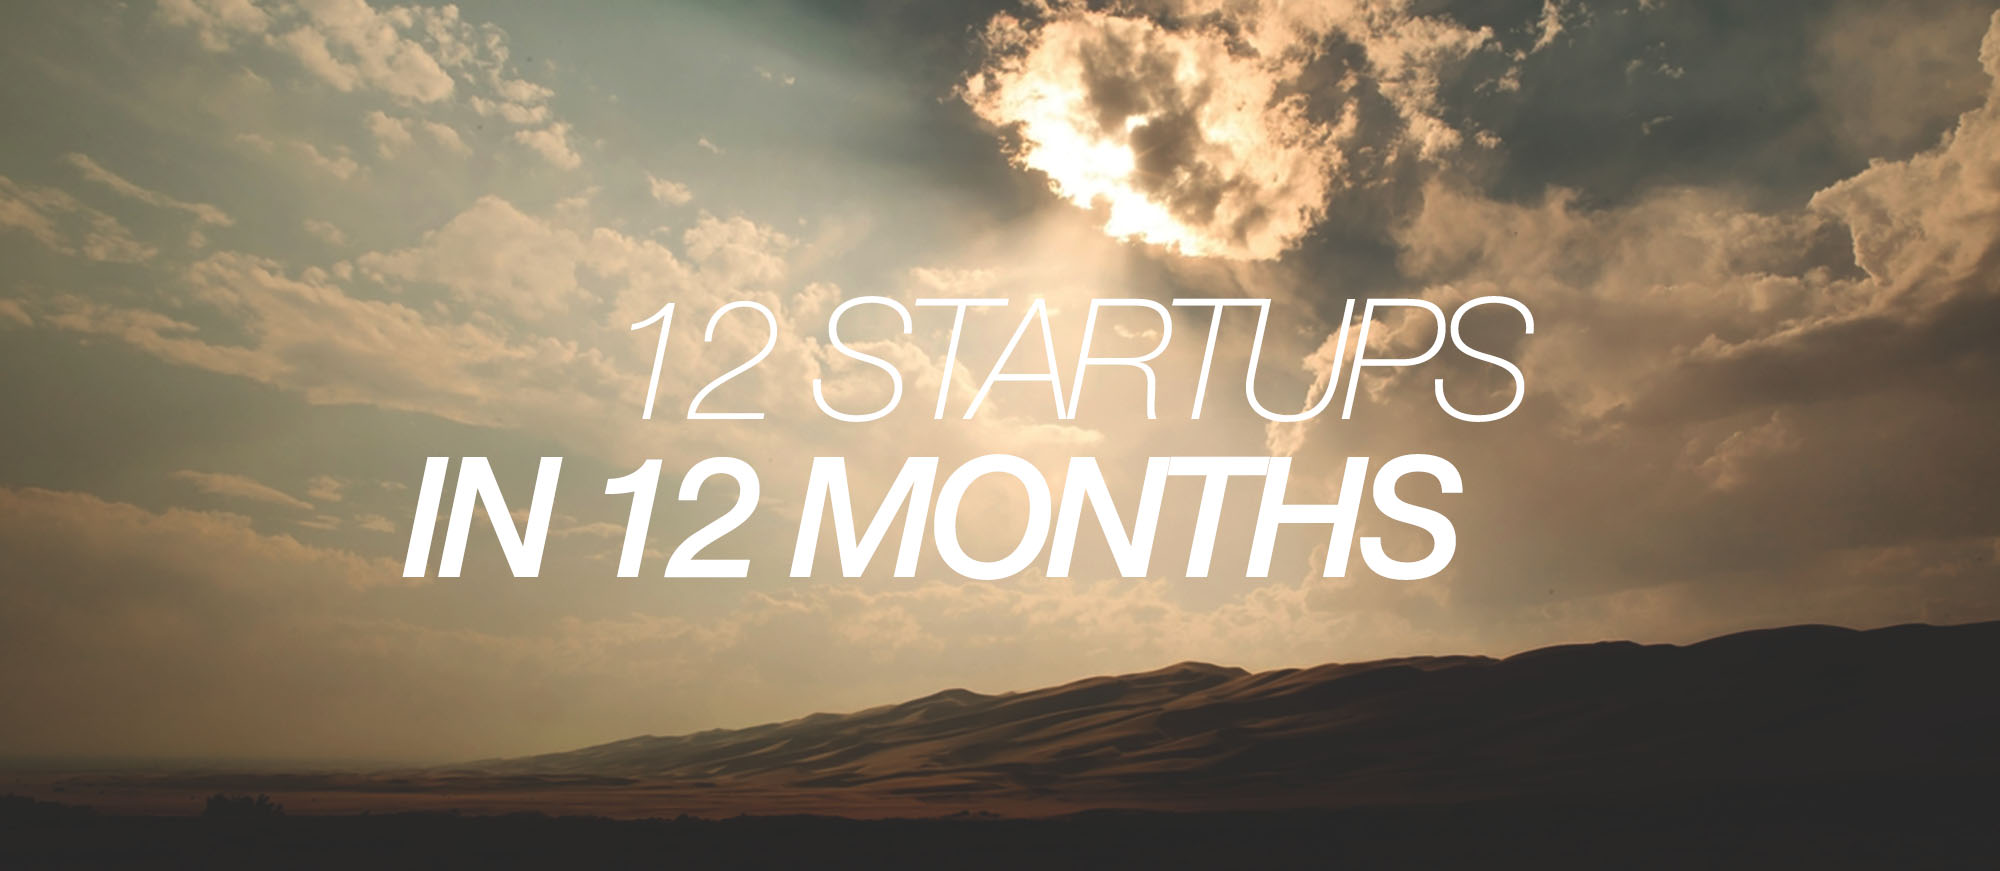 I'm Launching 12 Startups in 12 Months